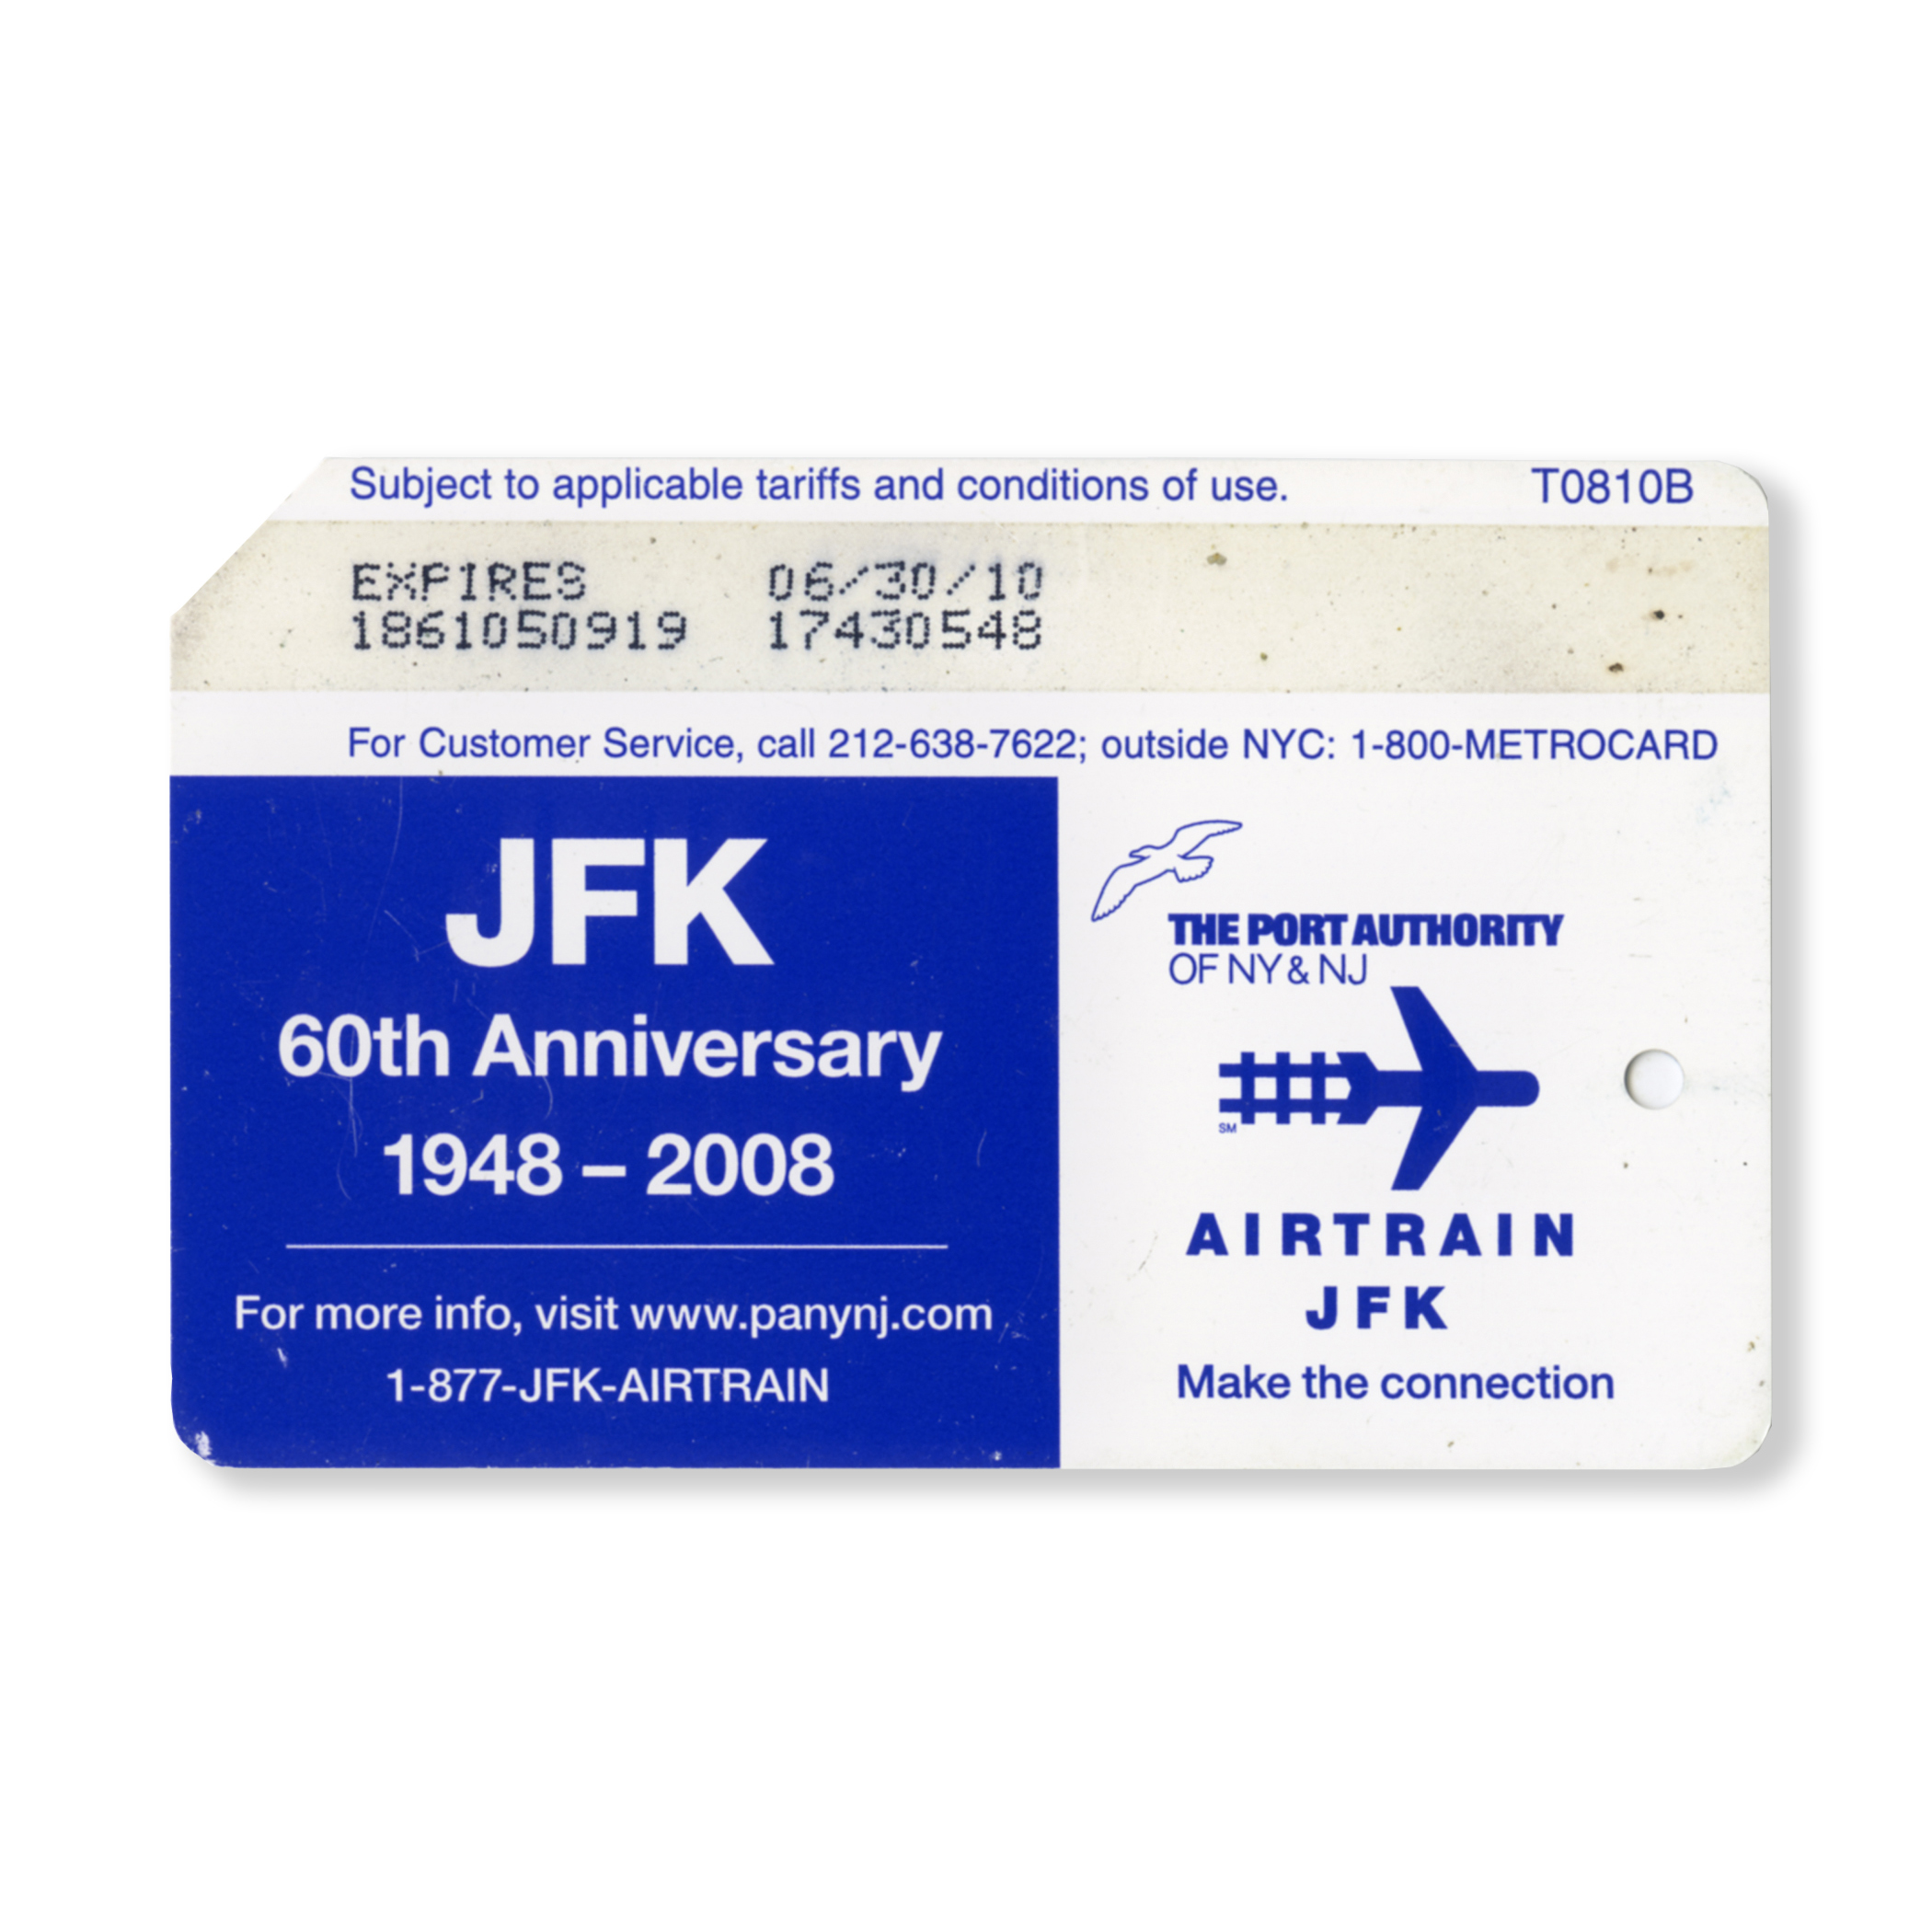 the_nycta_project_jfk_60th_anniversary_metrocard_2008.jpg